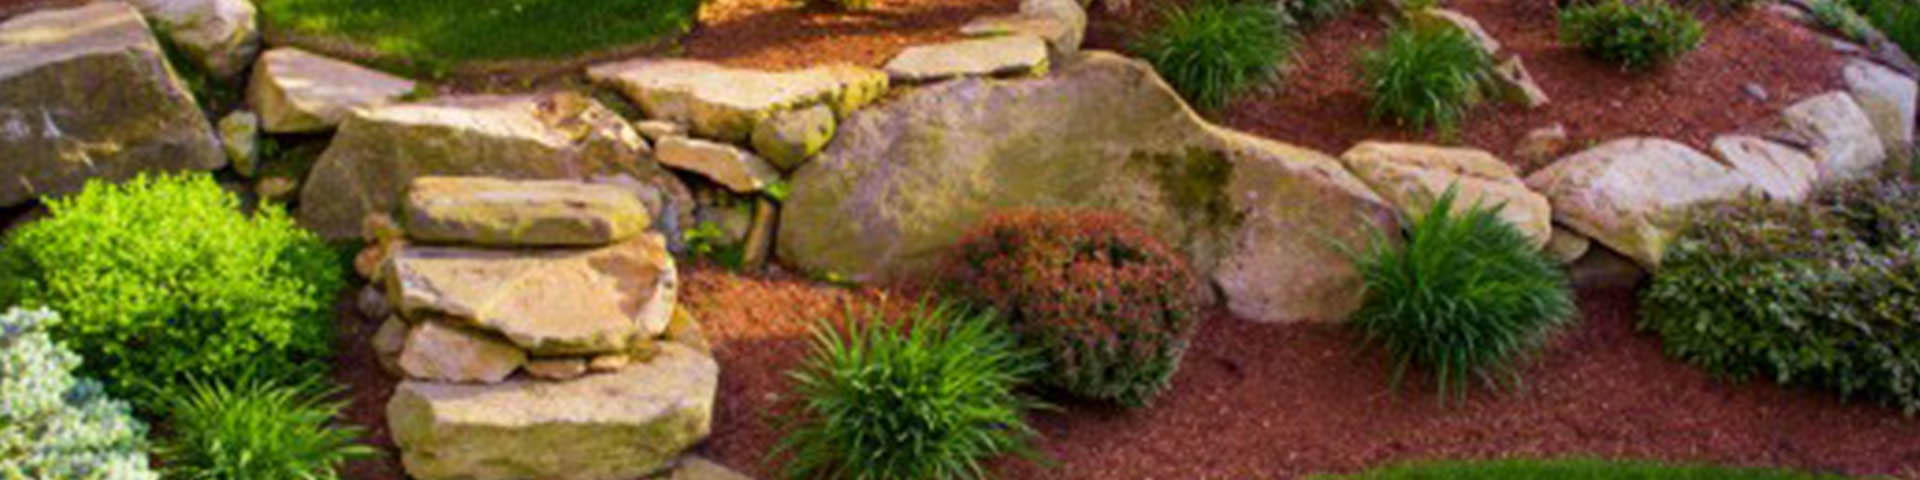 full service landscaping anoka mn shades of green landscaping